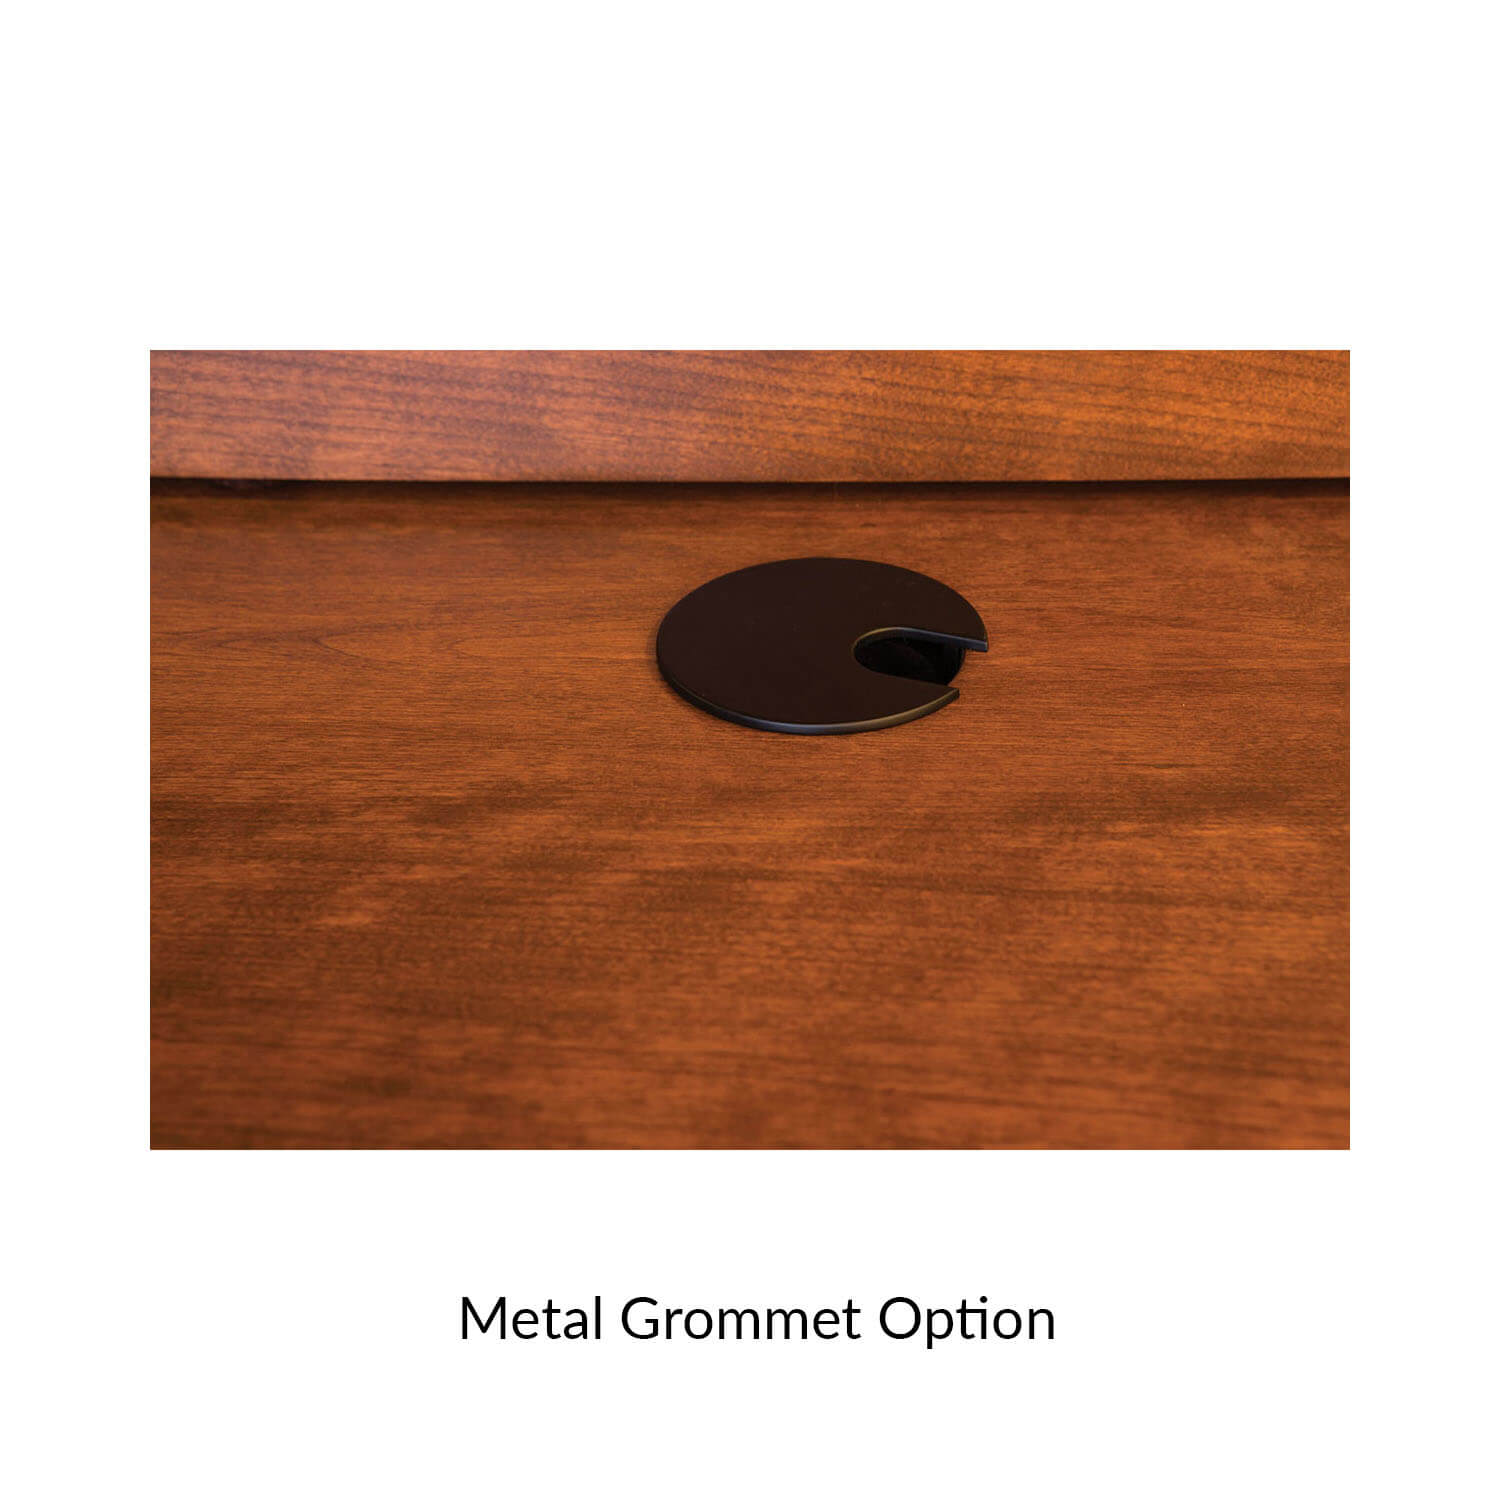 11.1-metal-grommet-option.jpg